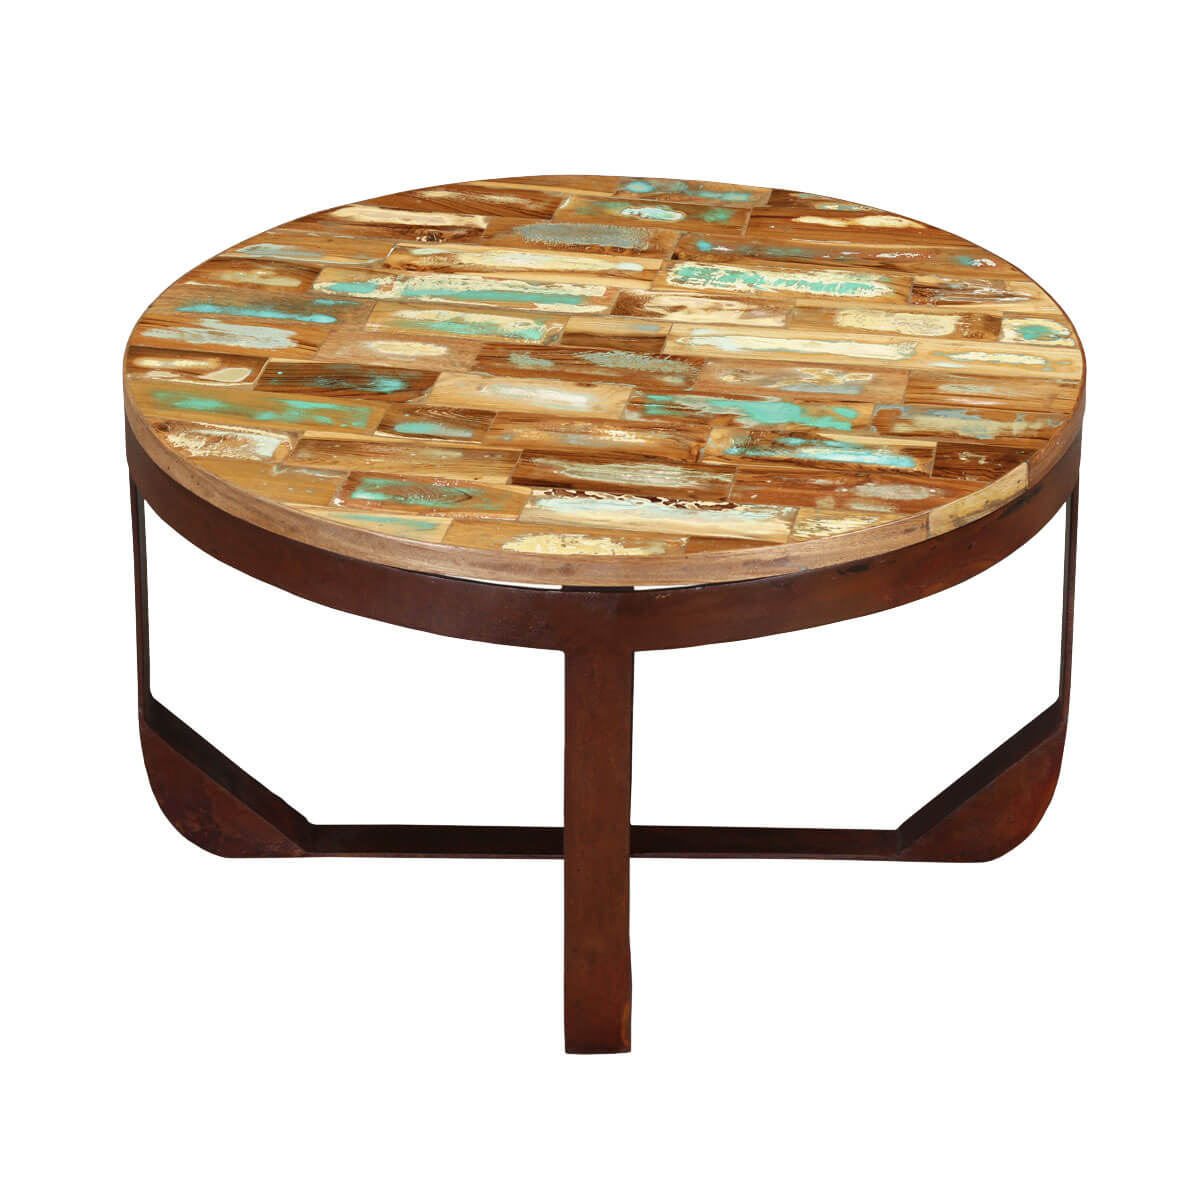 Industrial round handcrafted reclaimed wood rustic coffee for Large round rustic coffee table